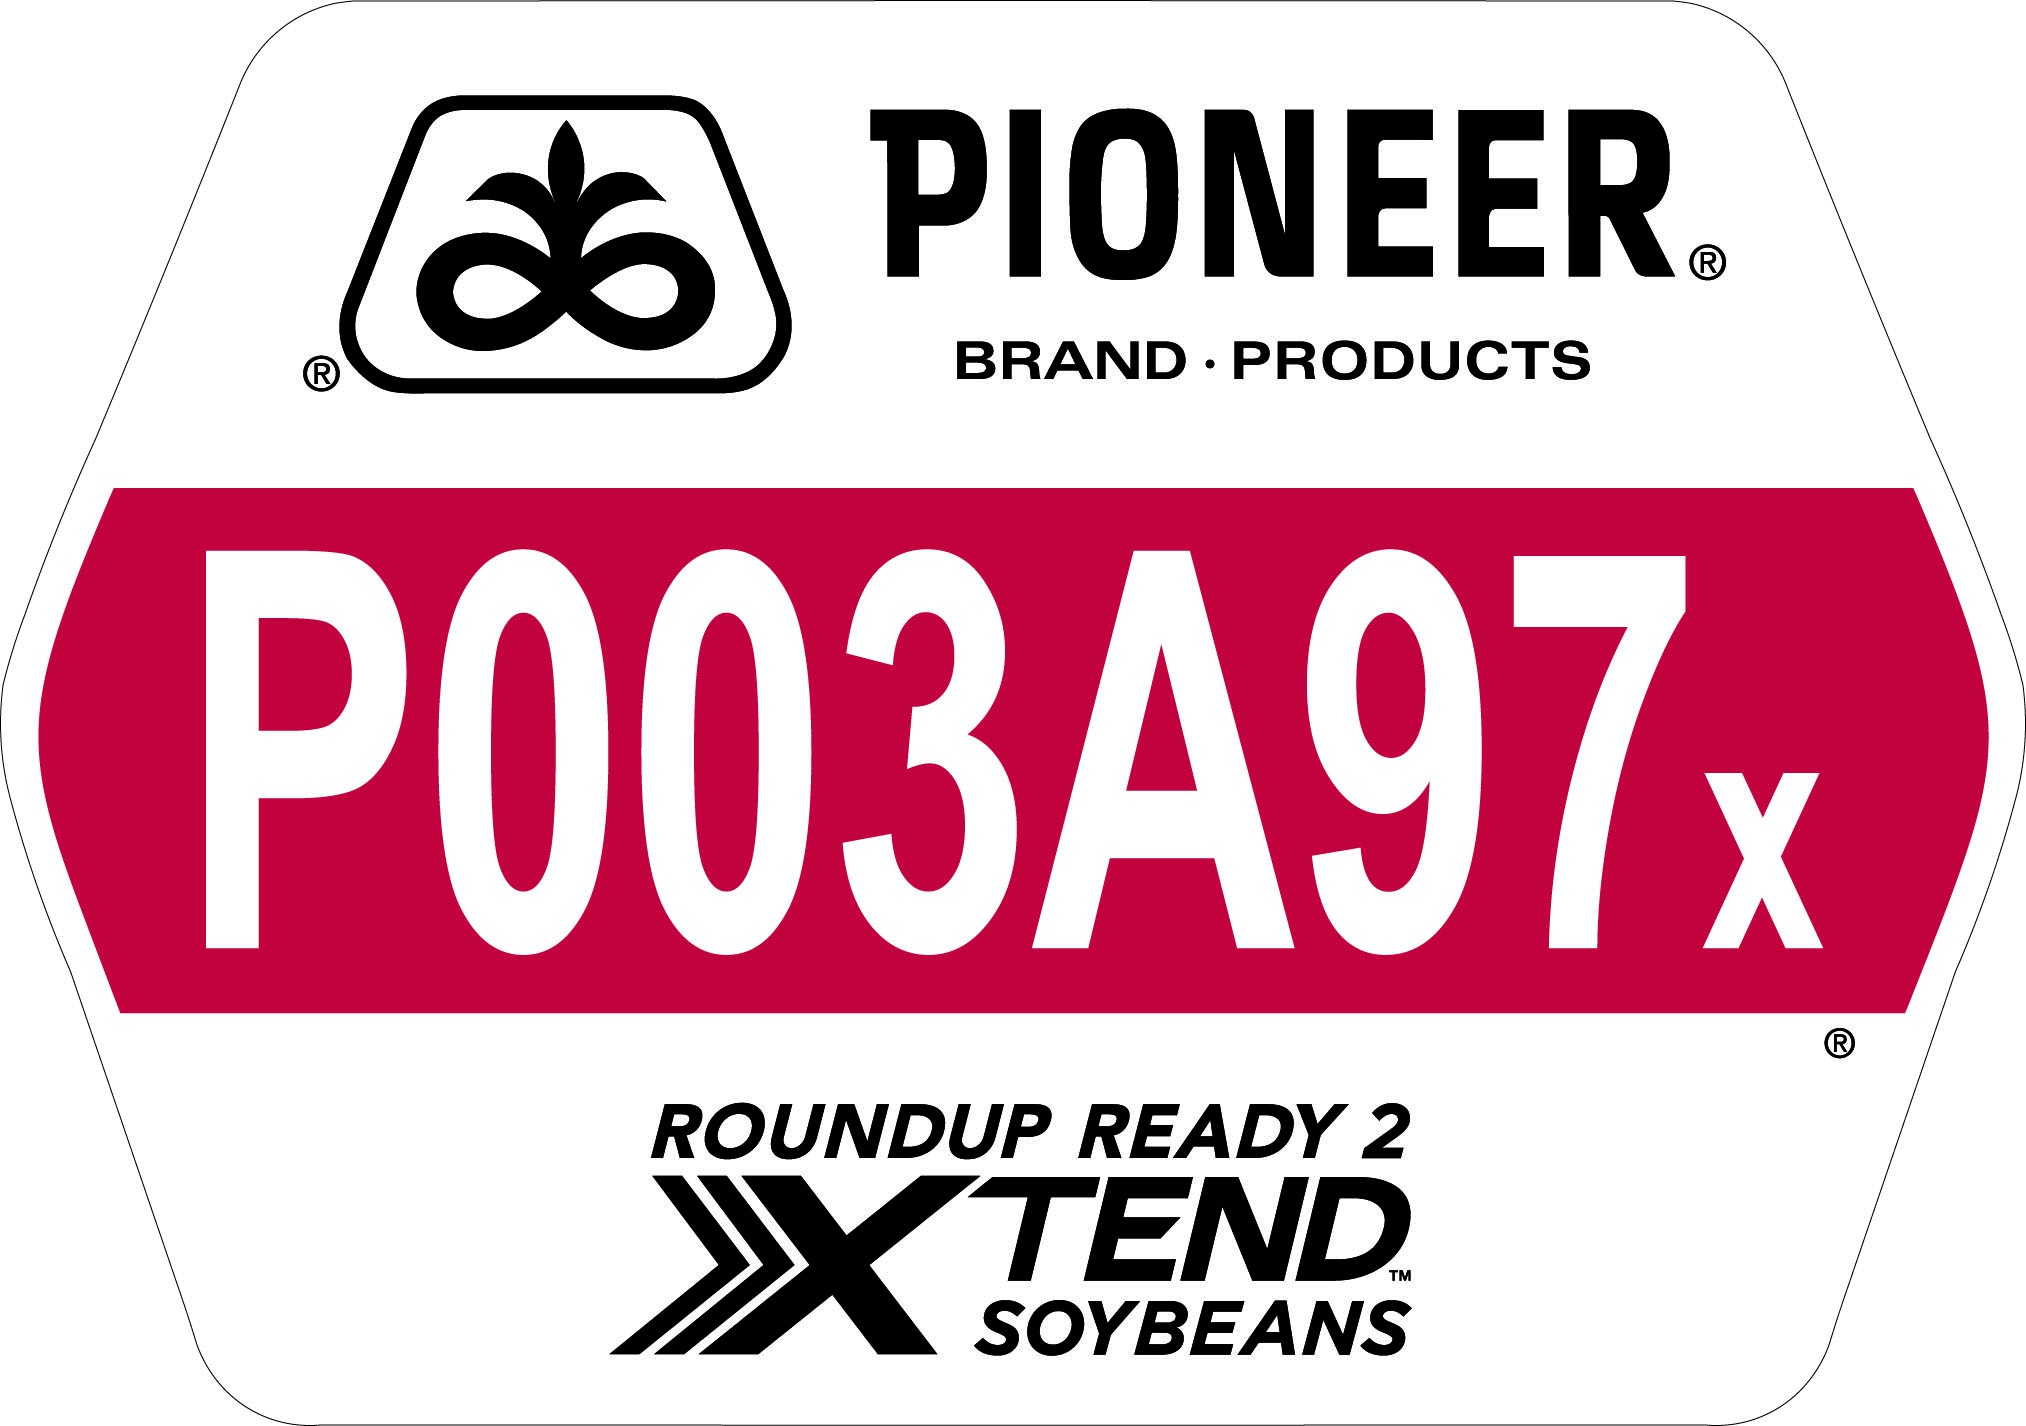 Seed - Pioneer - Soybeans - P003A97X